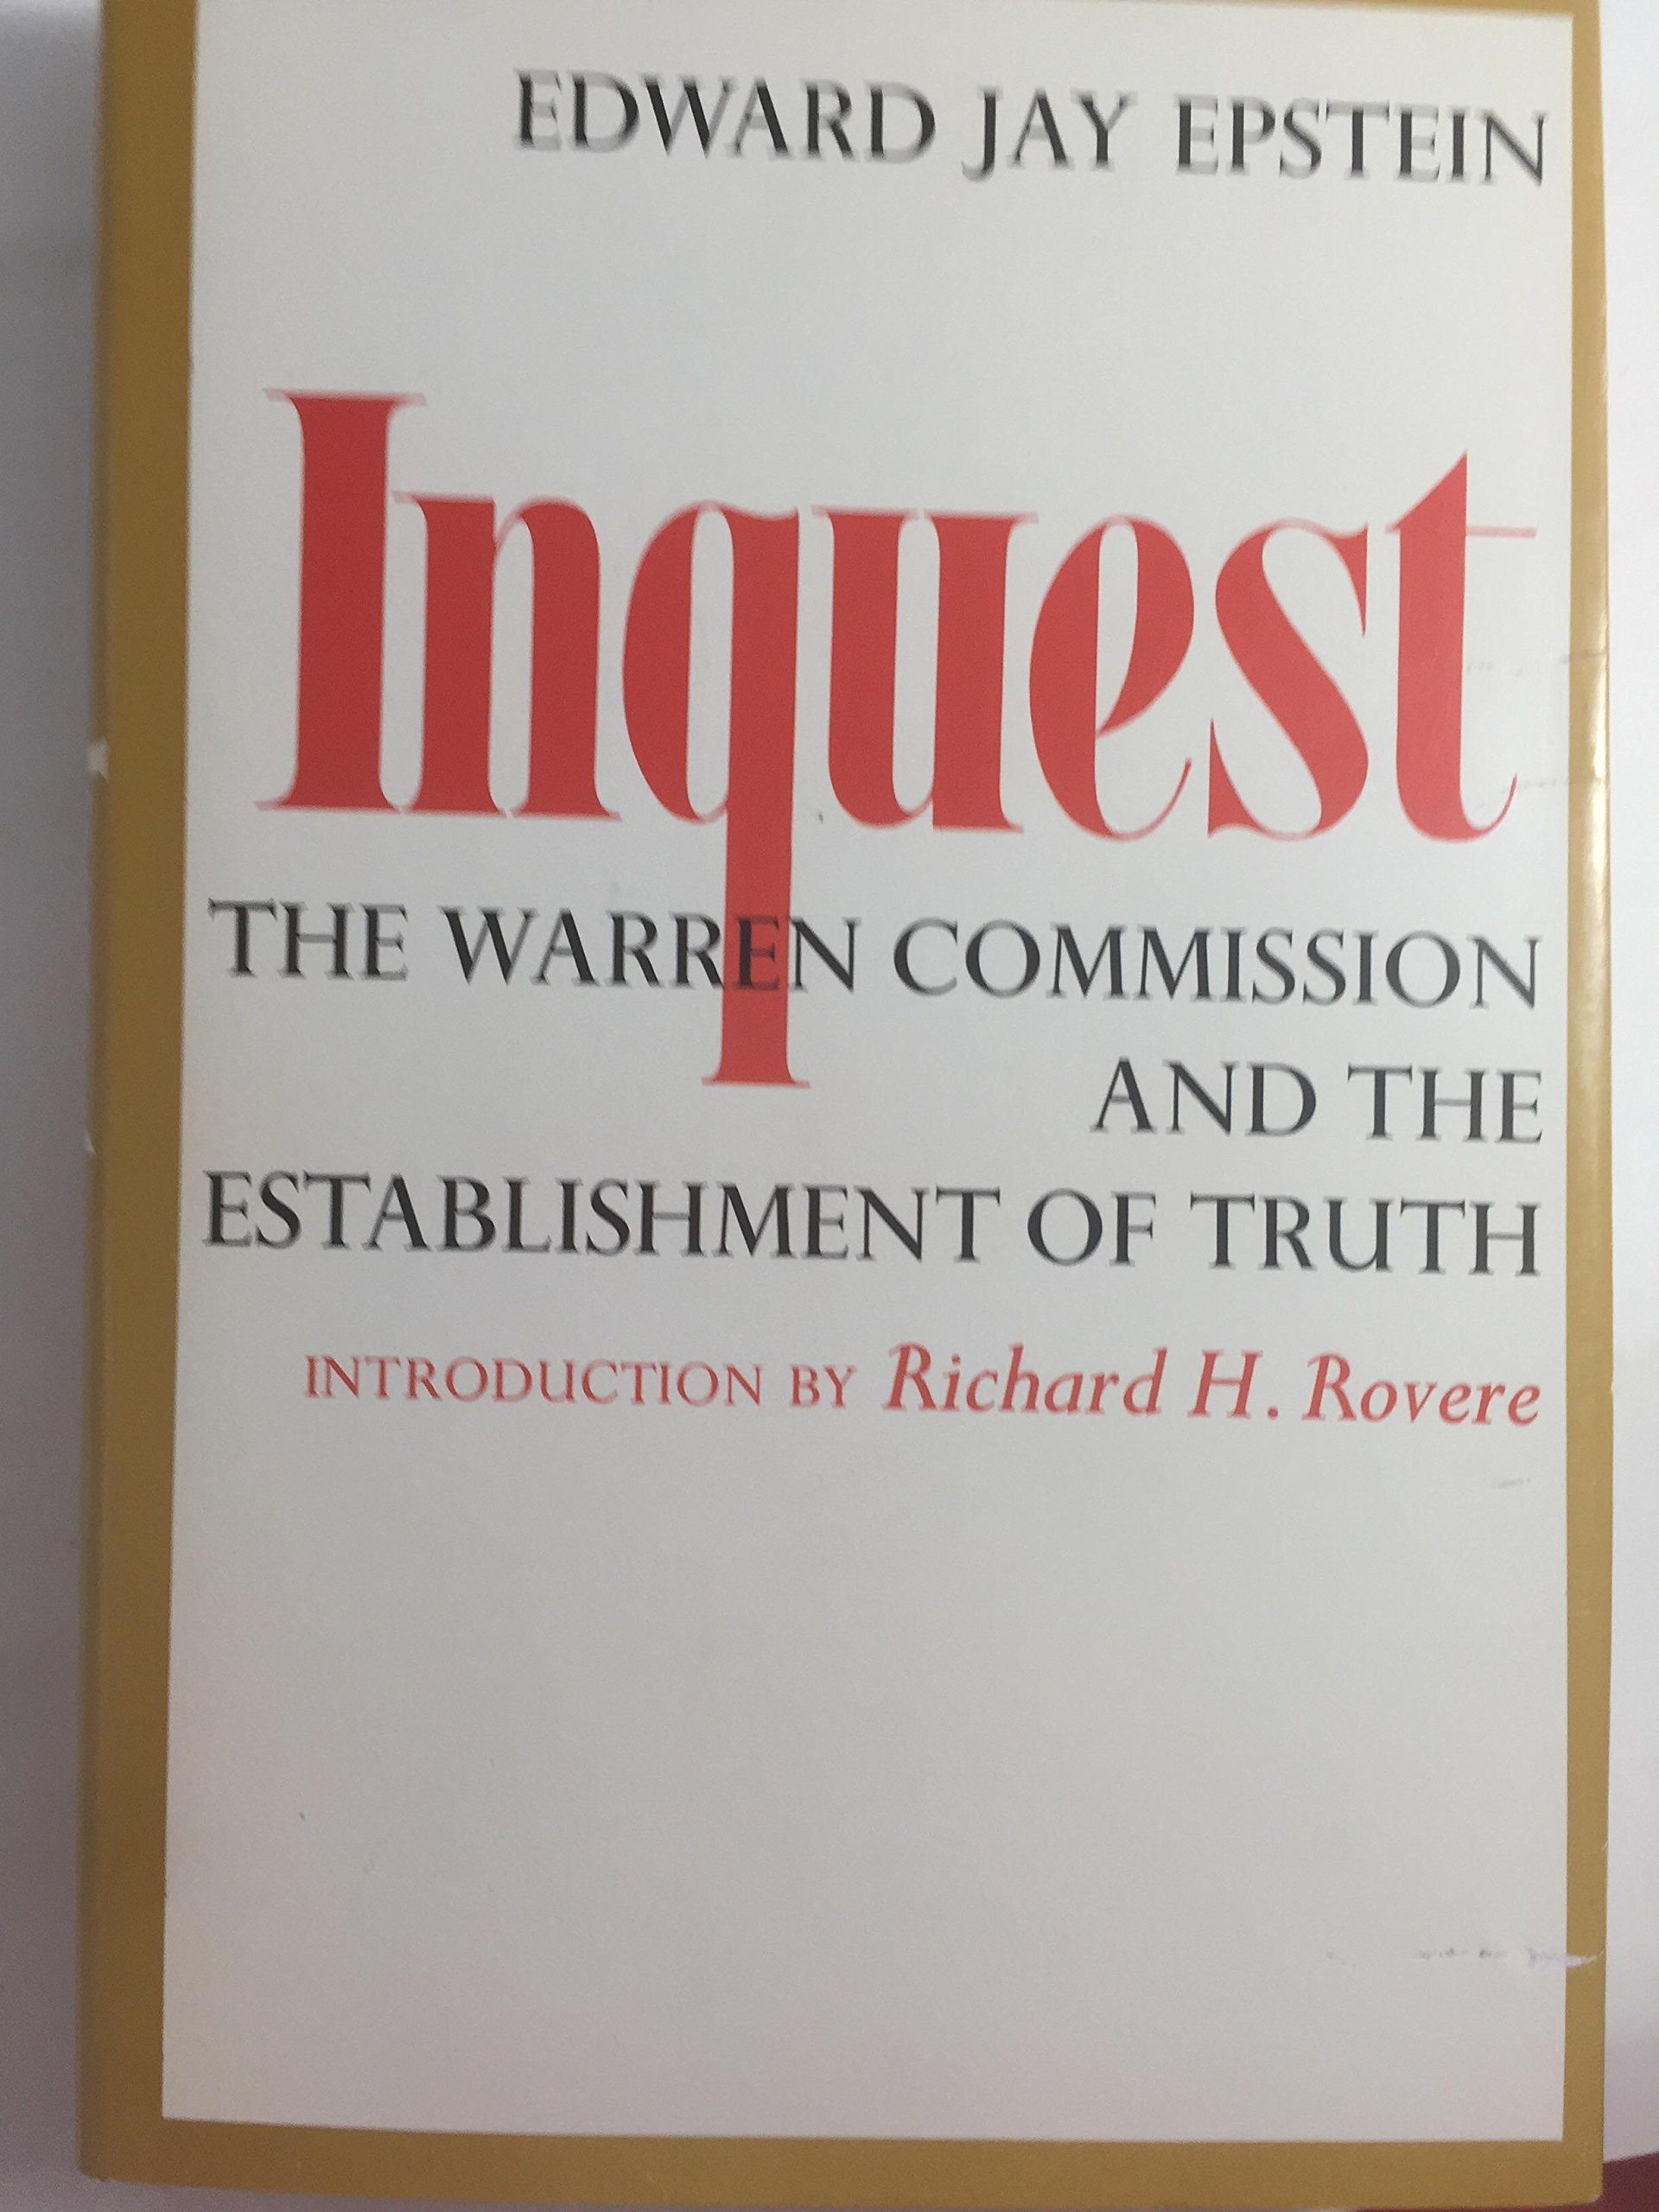 Inquest: The Warren Commission And The Establishment Of Truth:  Amazon.co.uk: Edward Jay. Epstein: 9780670398492: Books